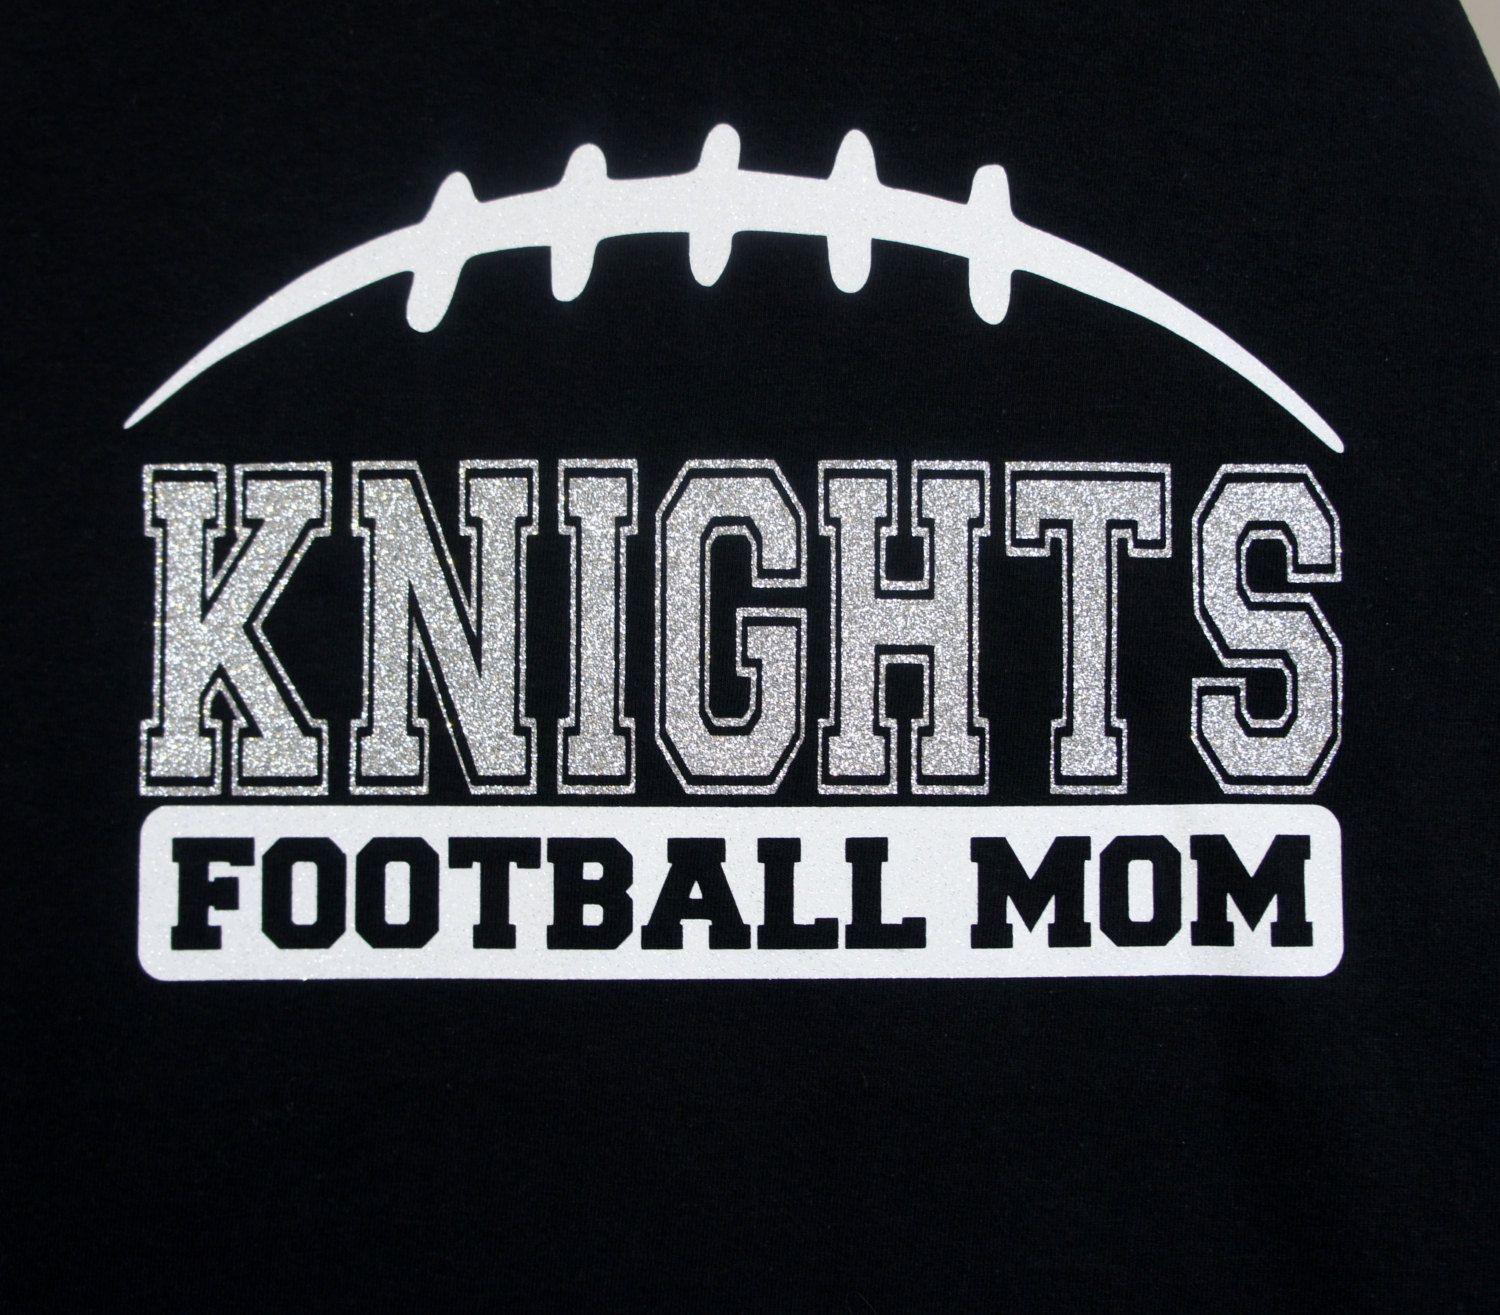 1dd0f2792 Custom Football Mom Shirt - customize for your team name (Knights Football  shown)